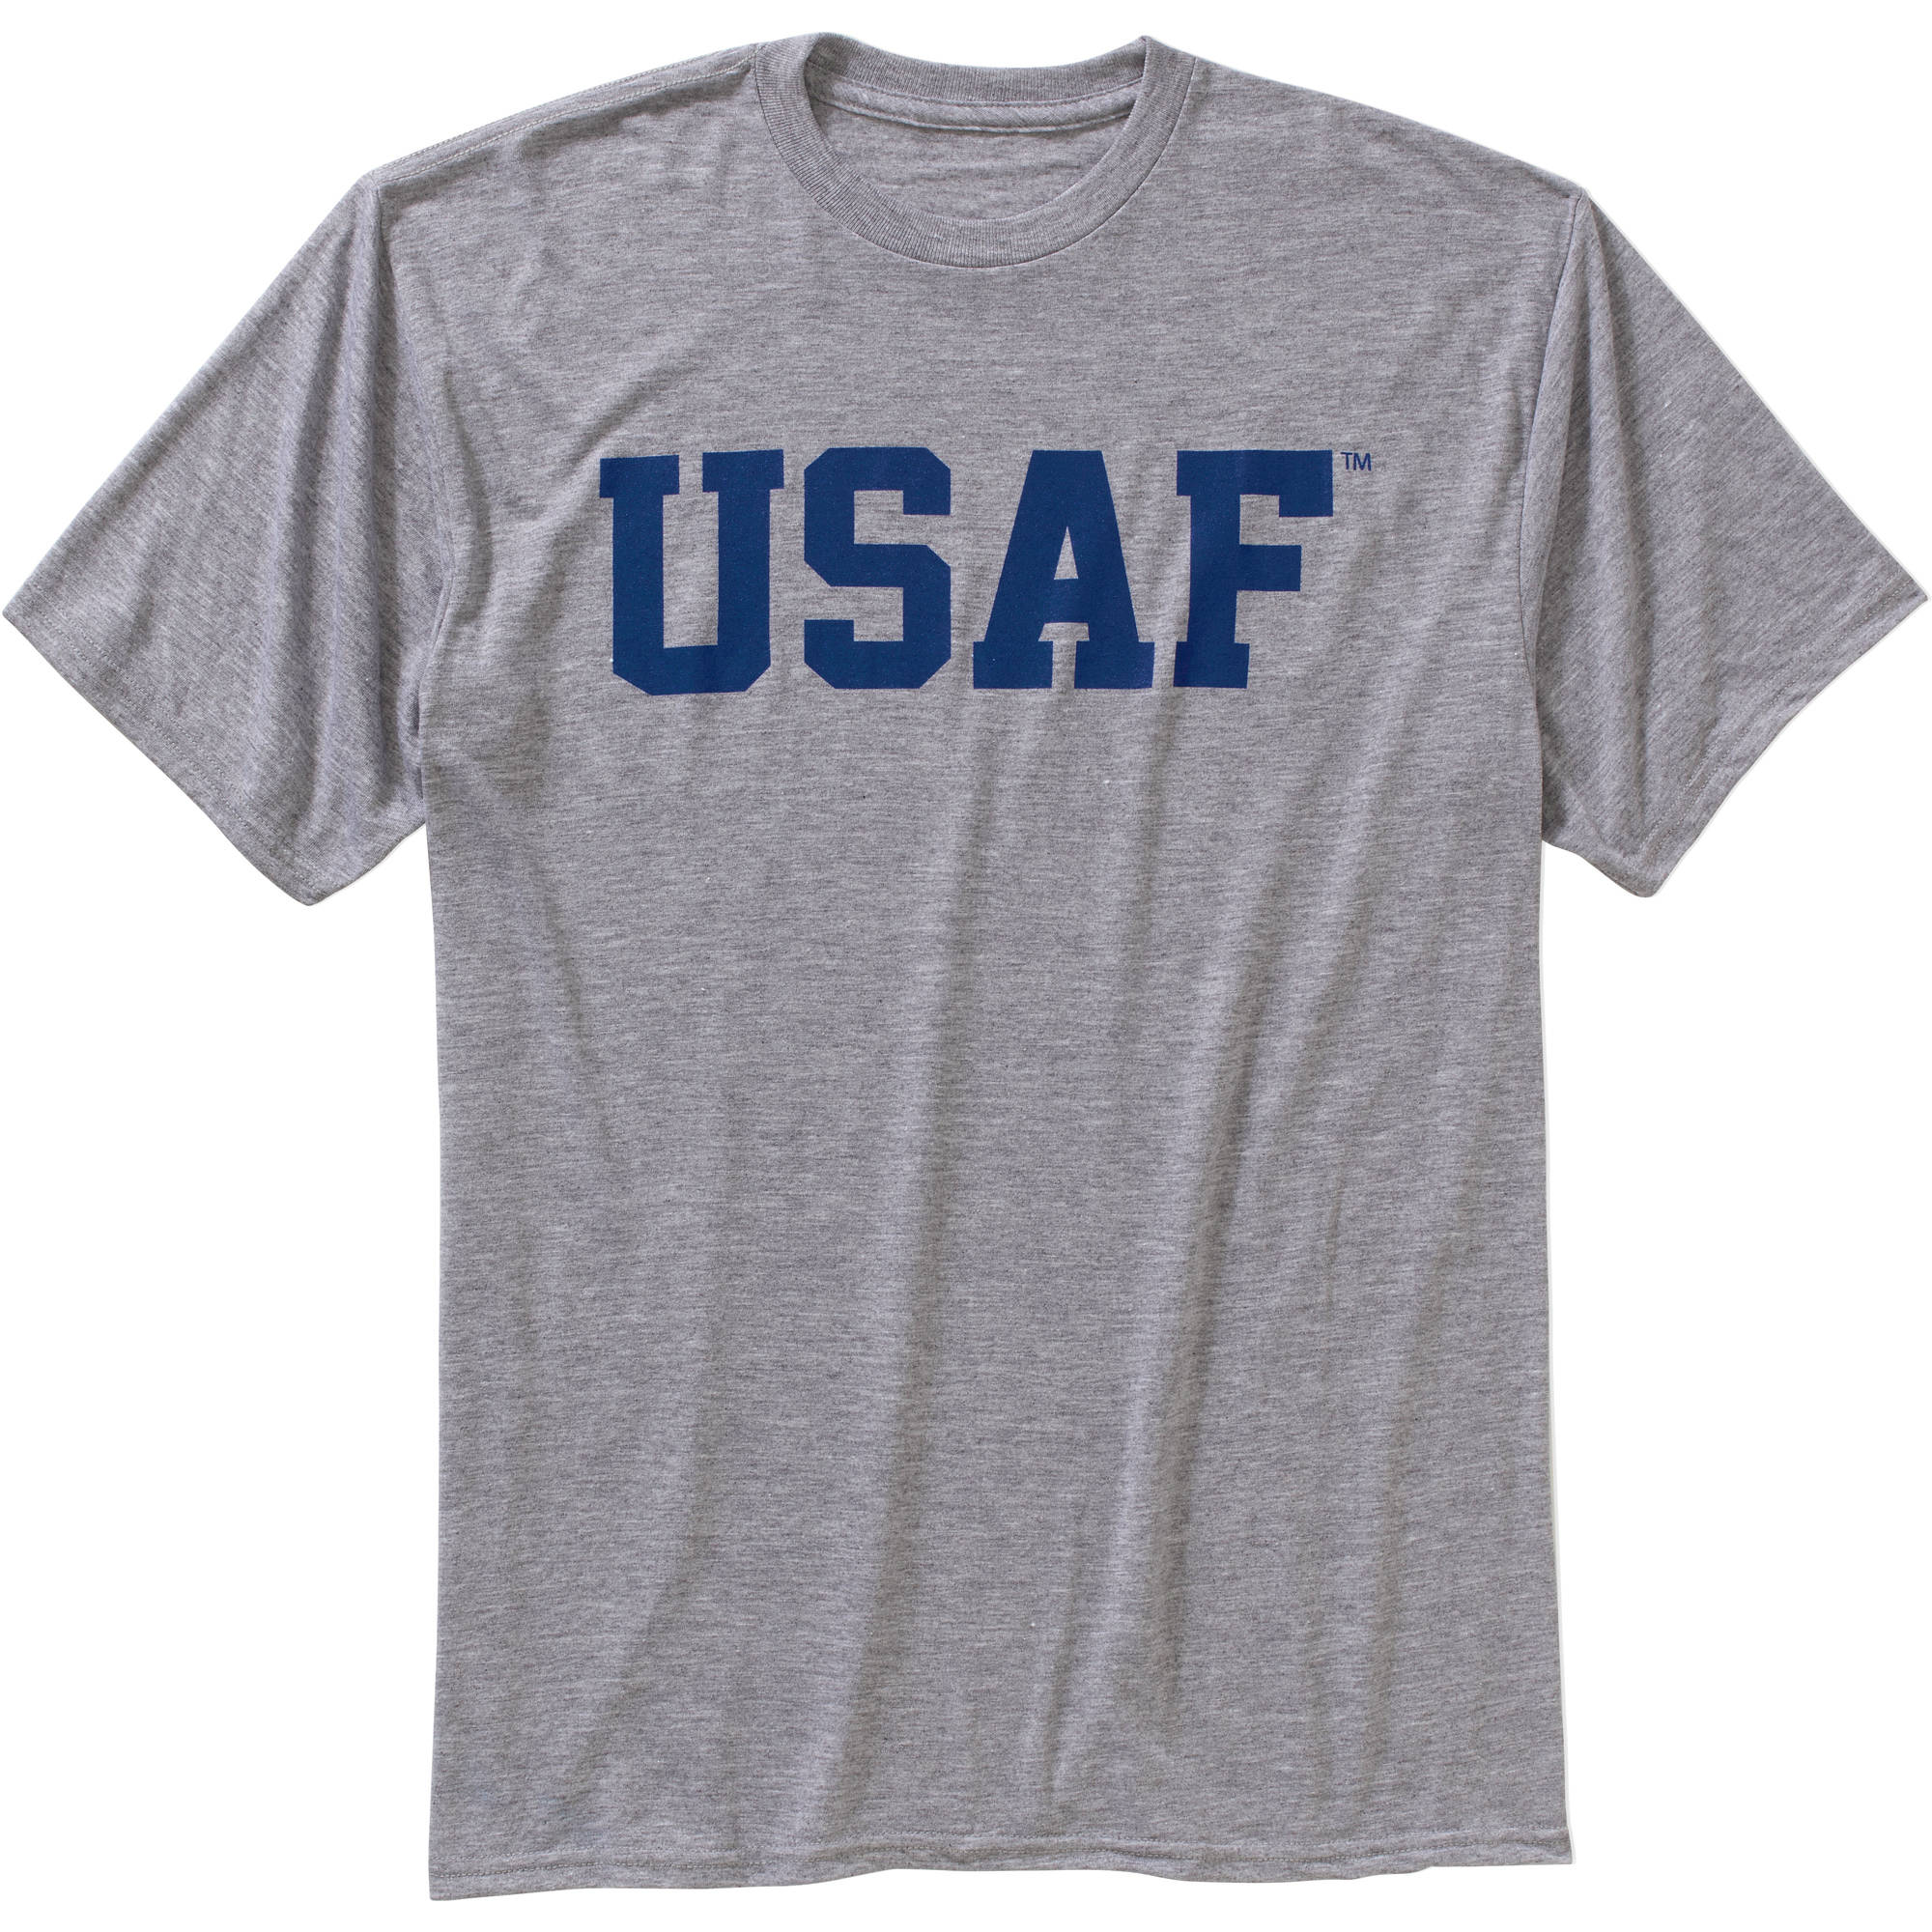 Men's Military Officially Licensed USAF Workout Tee, 2XL